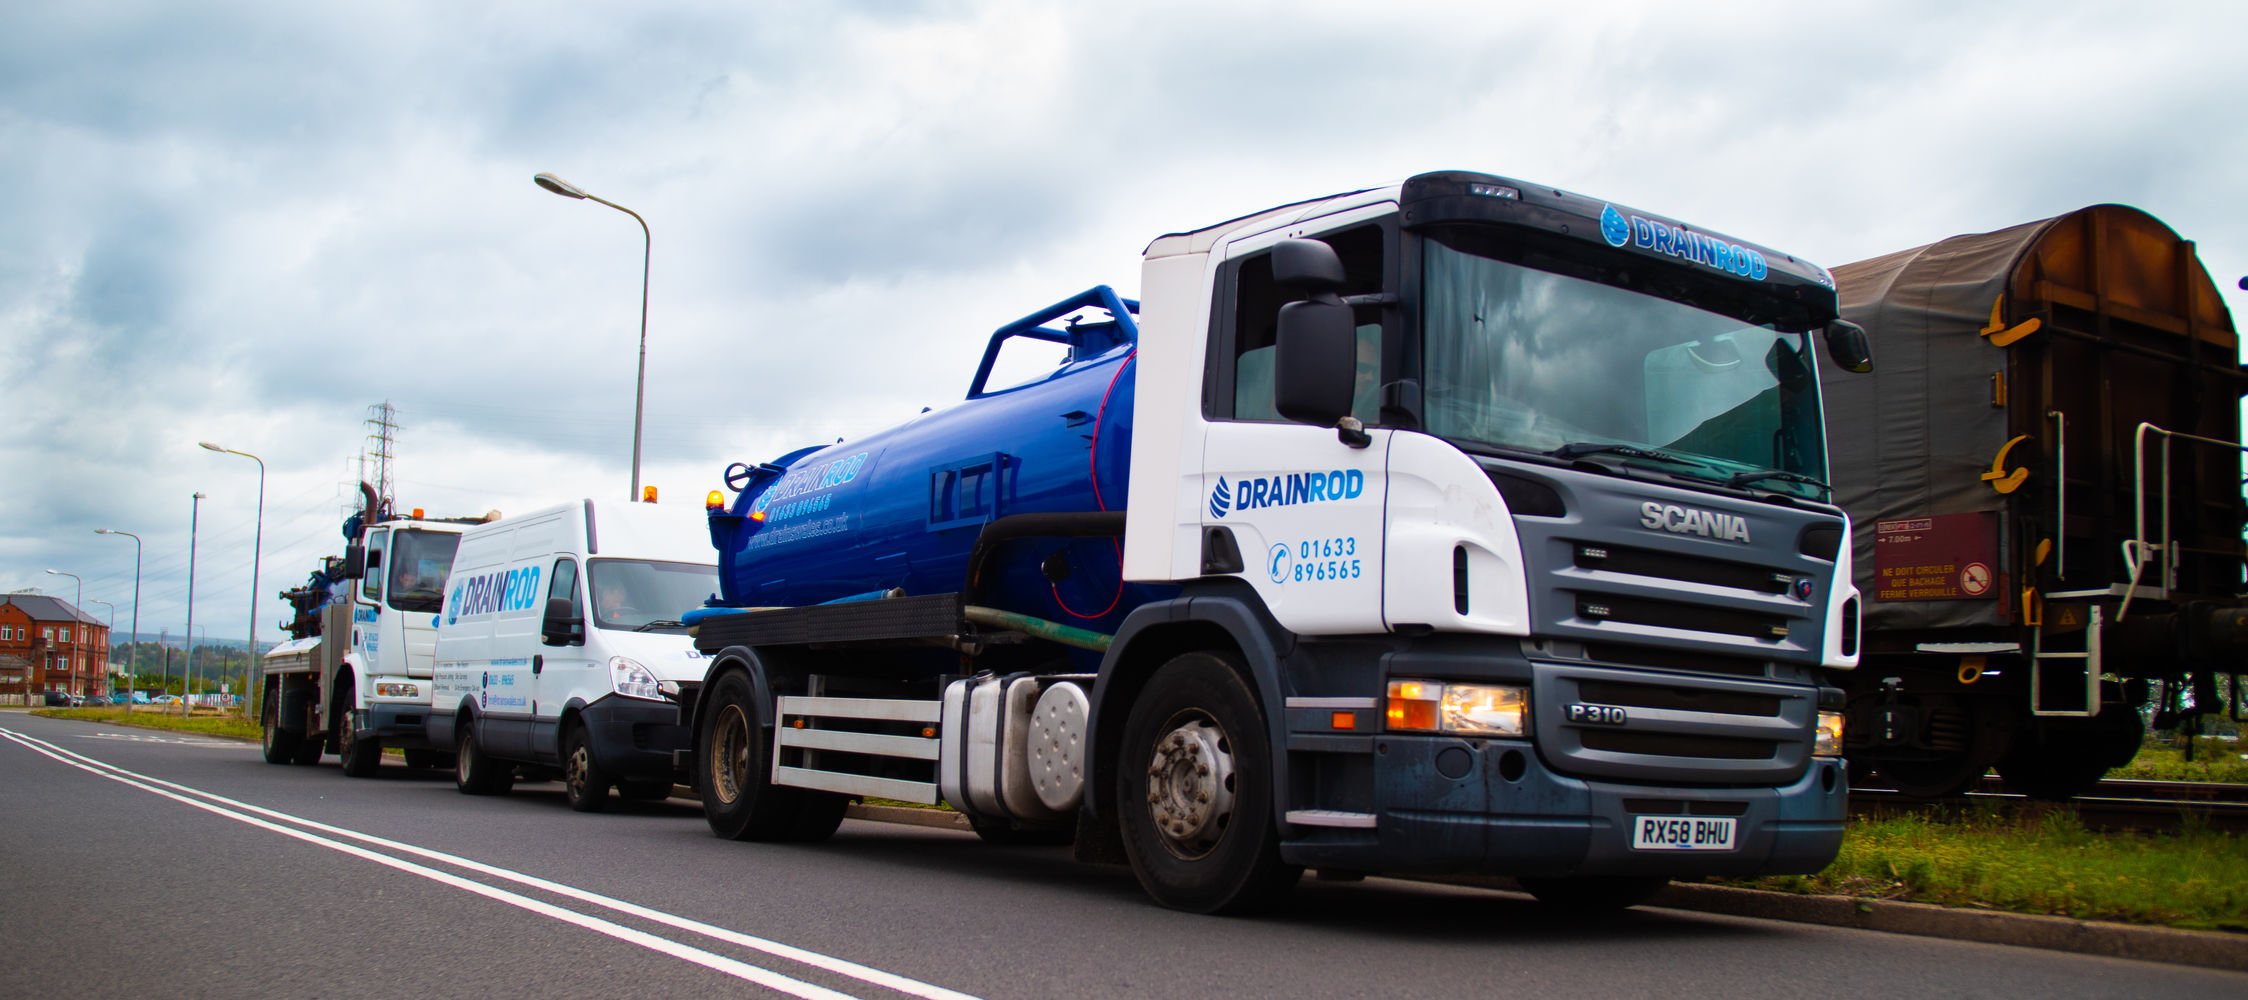 Drainrod septic tank truck